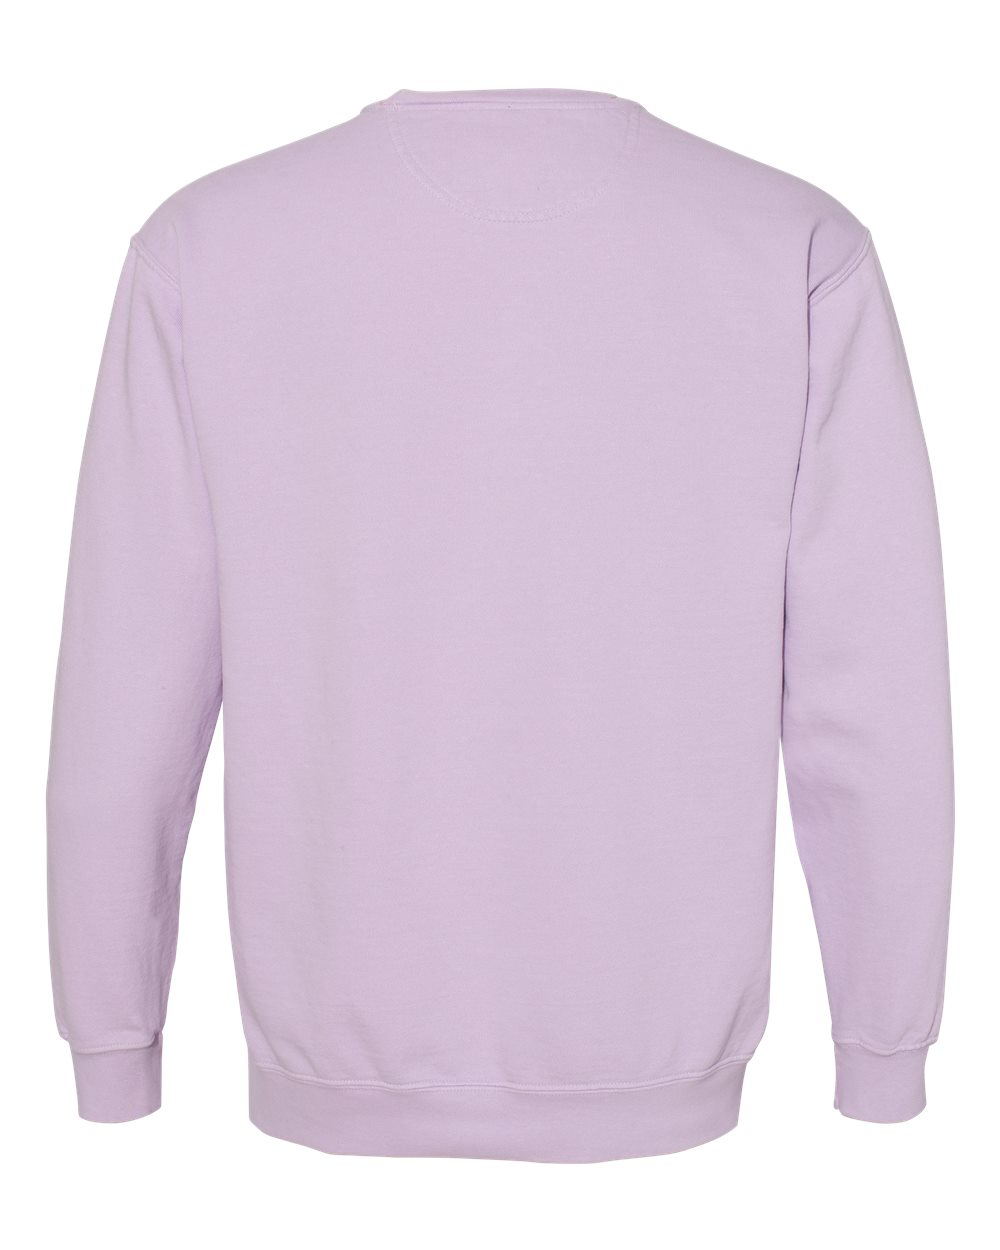 Comfort-Colors-Mens-Garment-Dyed-Ringspun-Crewneck-Sweatshirt-1566-up-to-3XL miniature 46